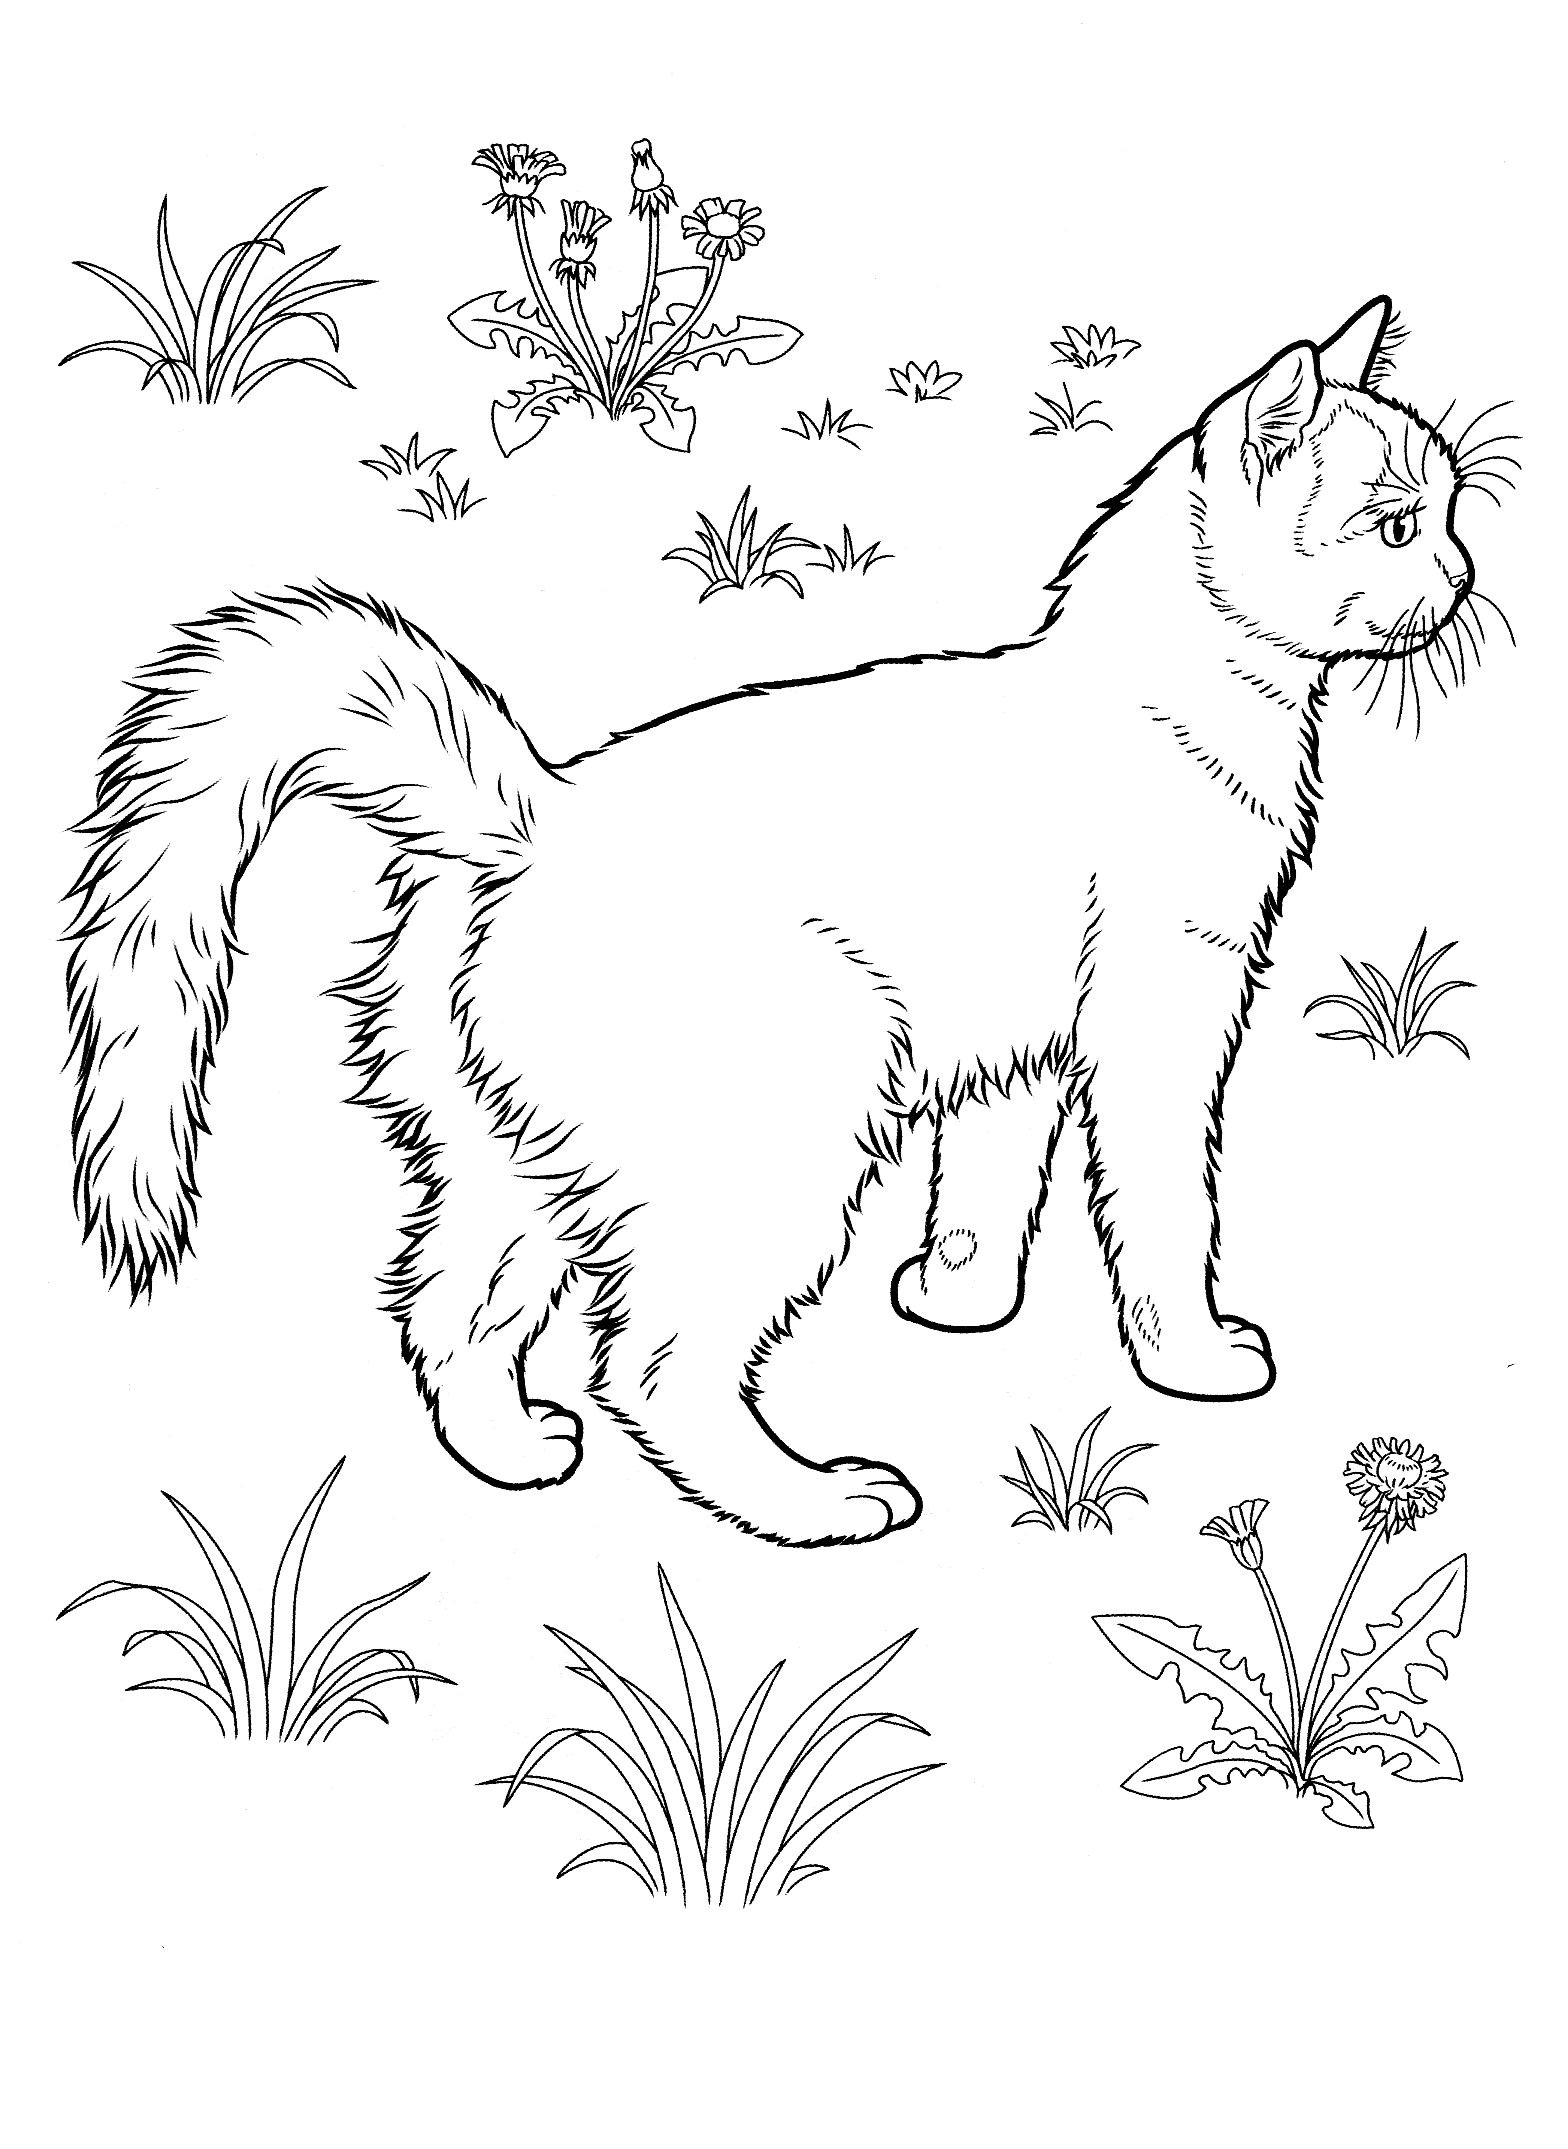 Cat 10 Cats Coloring Pages For Teens And Adults Cat Coloring Page Family Coloring Pages Animal Coloring Pages